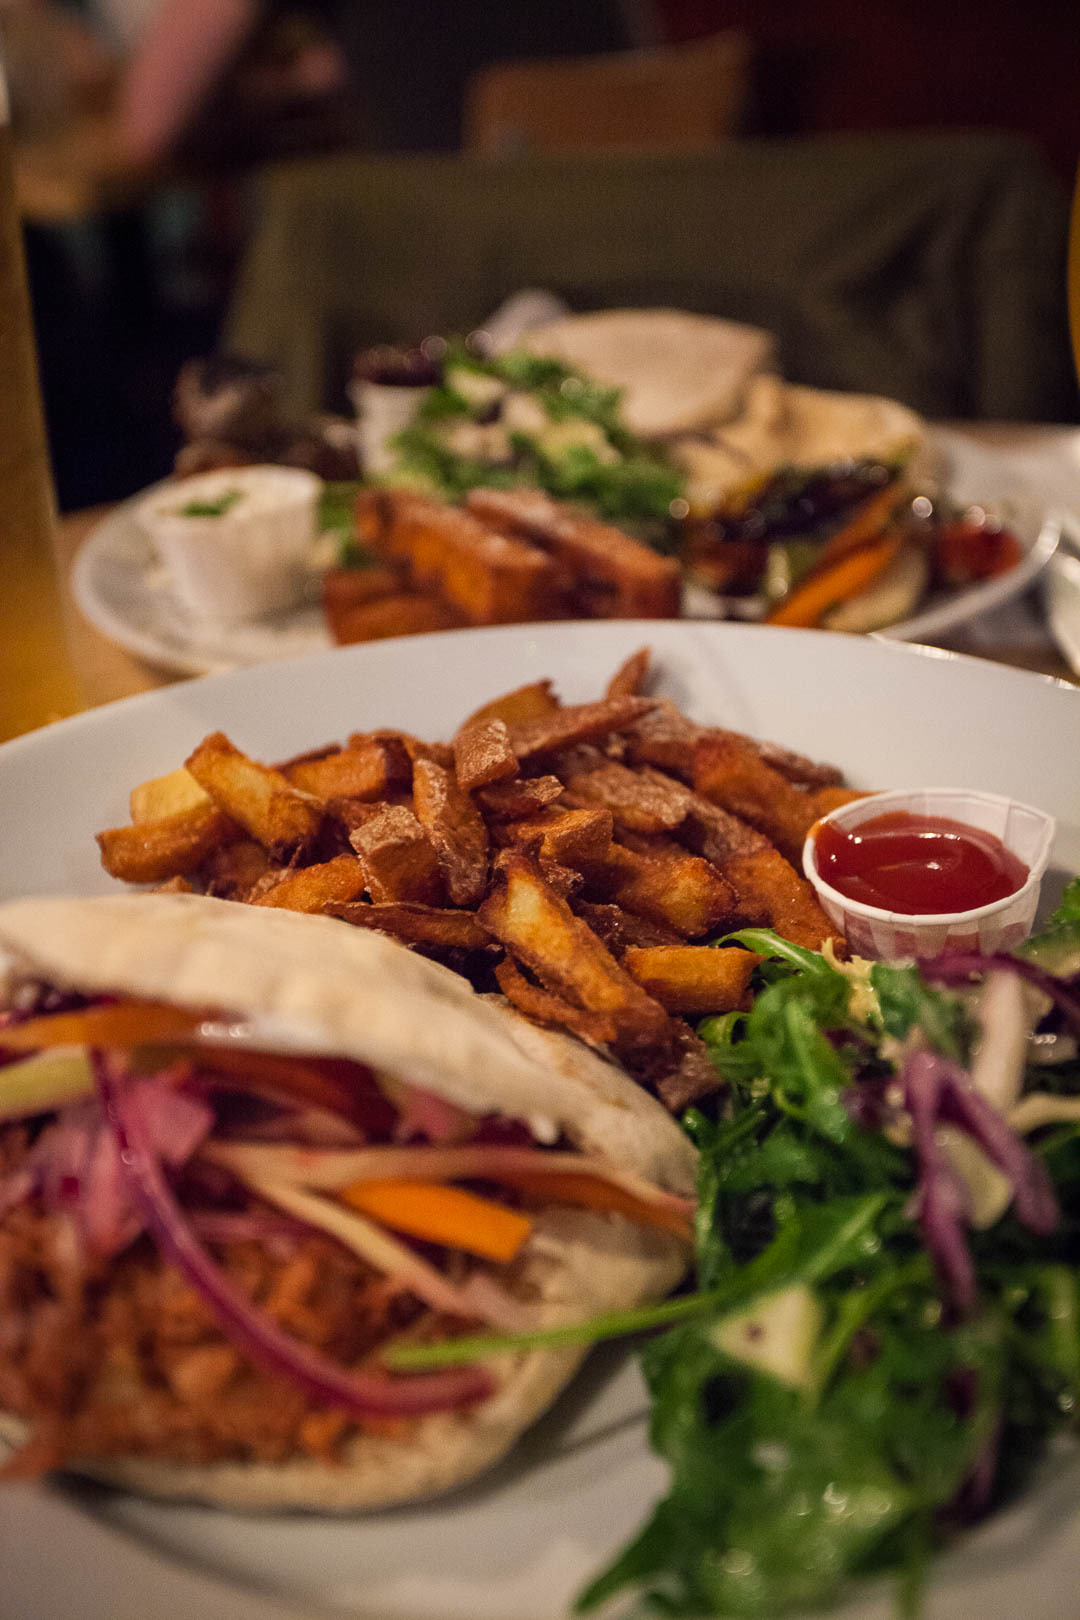 Stereo Glasgow is a vegan restaurant, a bar and a club & music venue in Glasgow. All the food at Stereo is 100% vegan and prepared fresh to order. Looking for burgers, pizza or other delightful vegan comfort food in a relaxed environment? Then Stereo is for you!